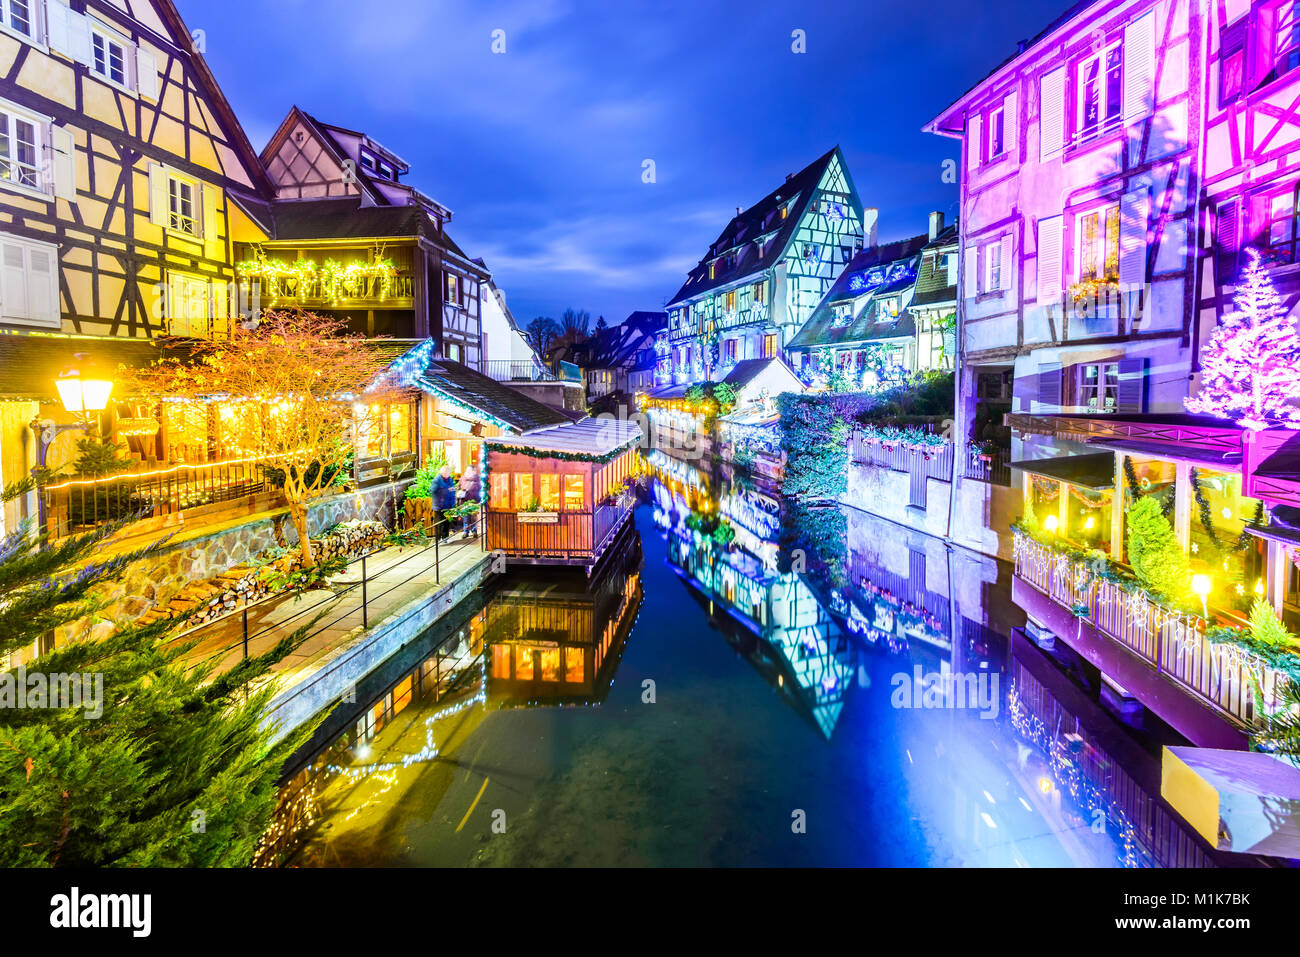 Colmar, Alsace, France. Gingerbread houses add Christmas decoration of local craftsmen, famous in Europe. - Stock Image